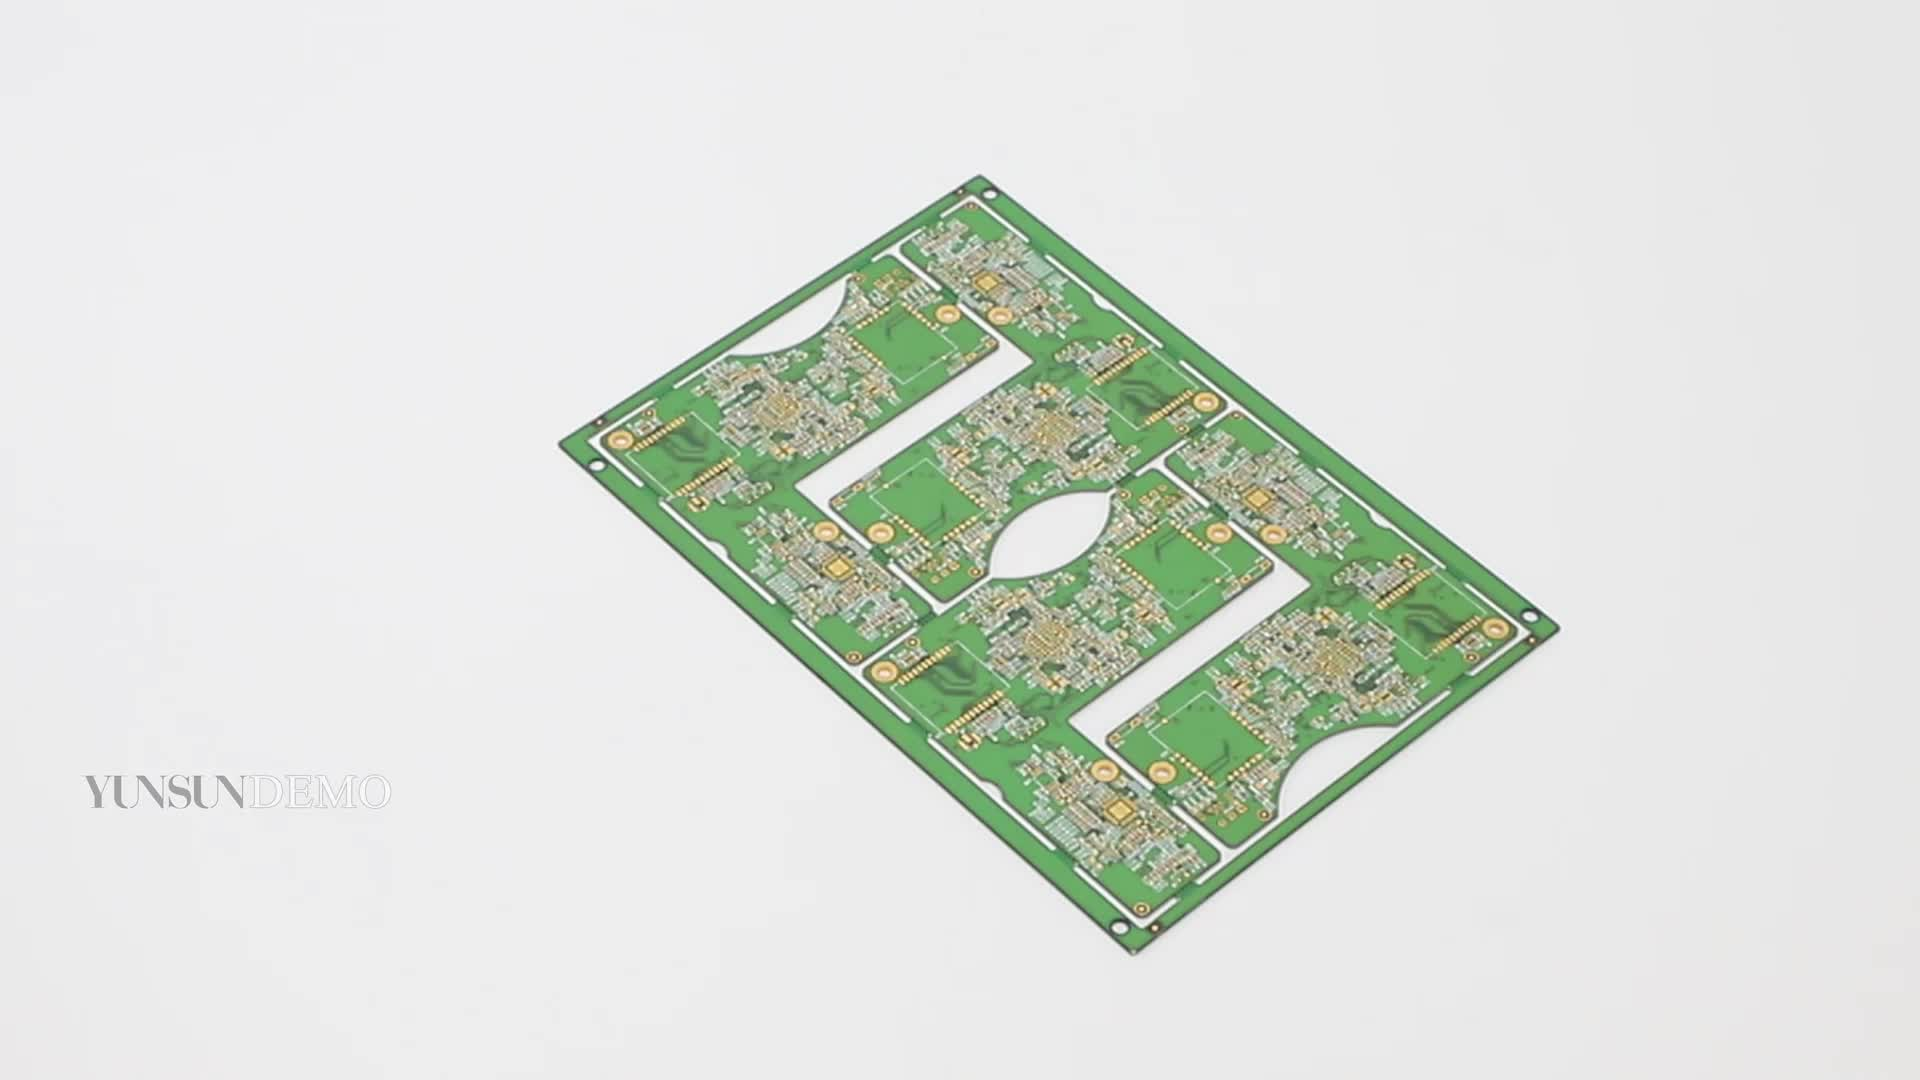 Shenzhen electronic fpc printed circuit board factory